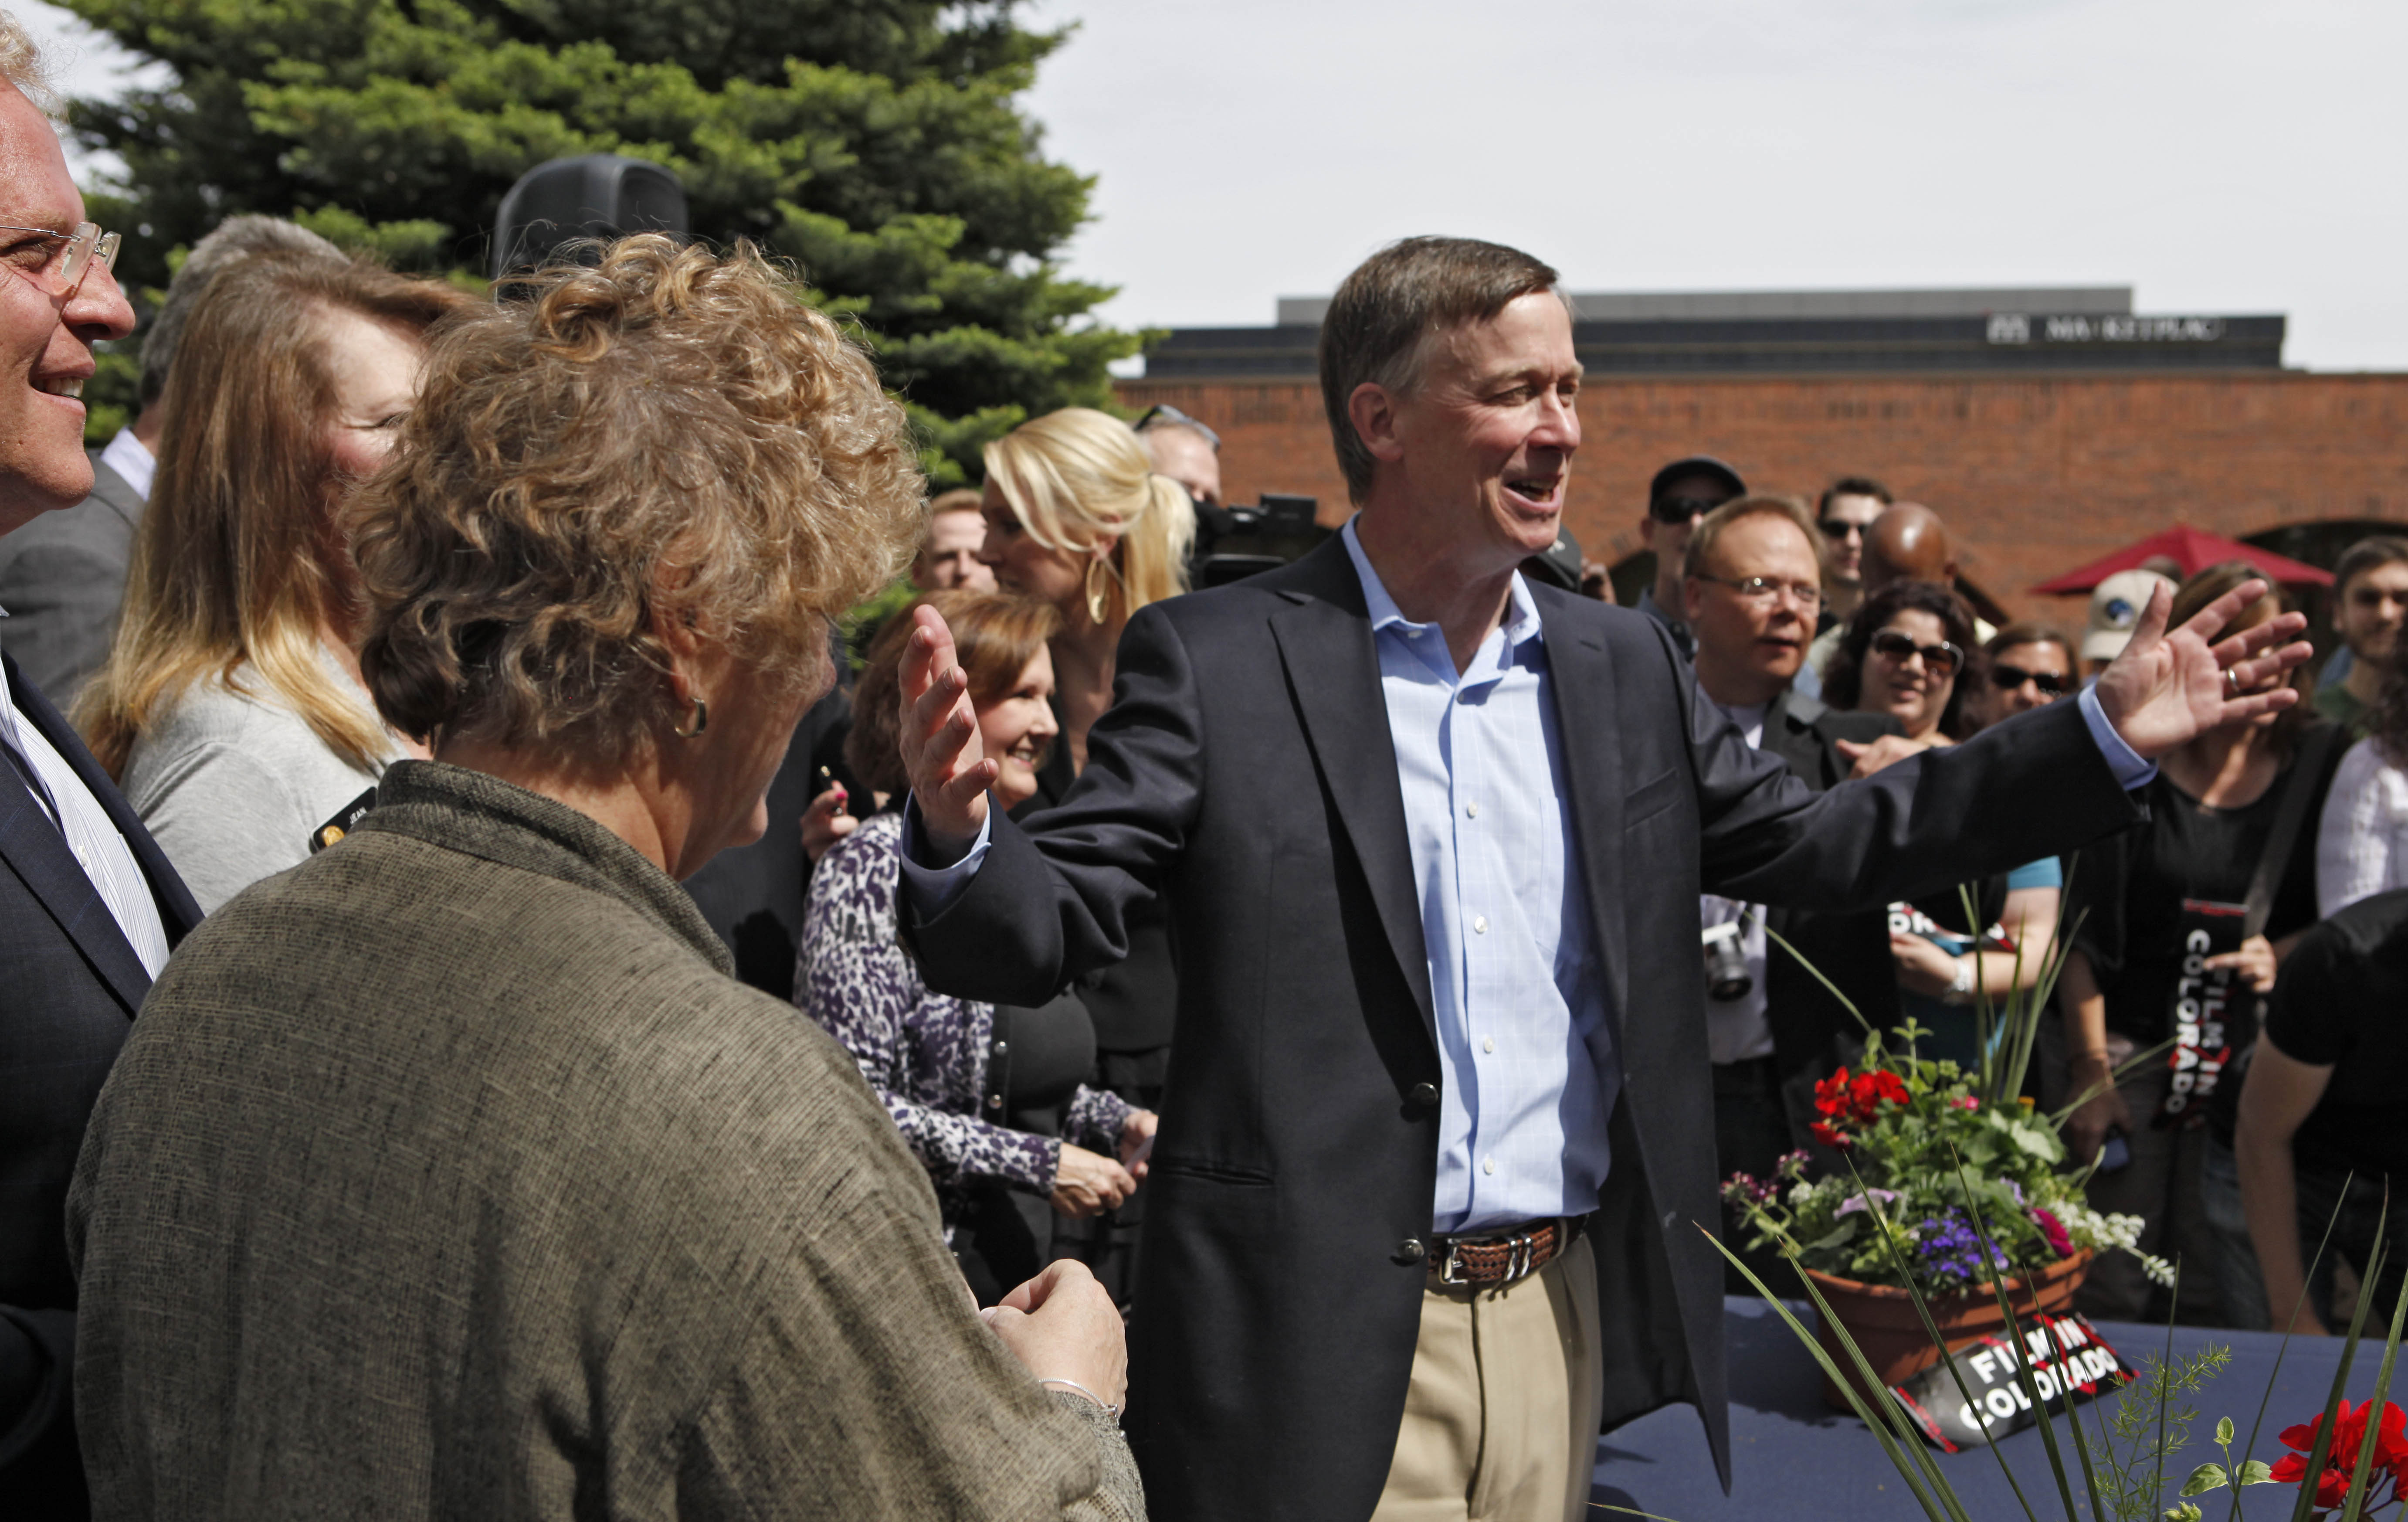 <p>Colorado Gov. John Hickenlooper passes out pens to members of the Legislature at a ceremony in Denver on Friday, May 18. 2012, after he signed a measure into law to increase tax rebates and incentives for film production in Colorado.</p>